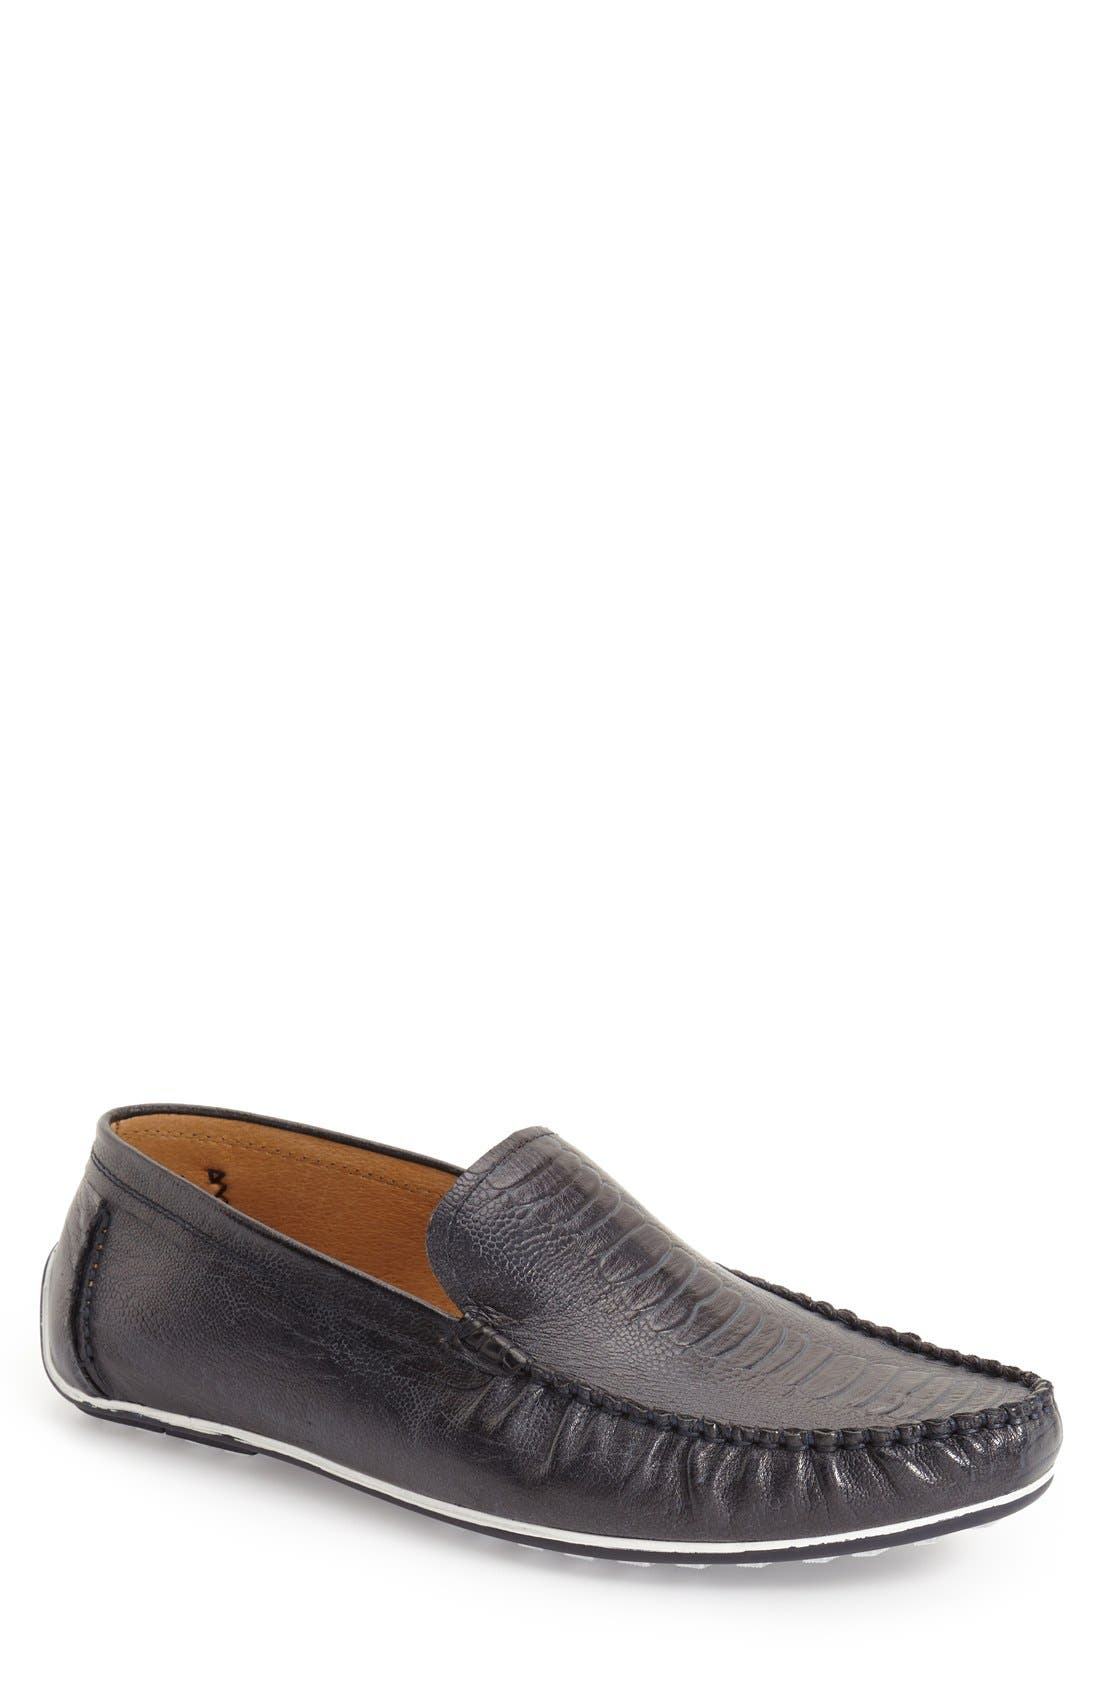 Zanzara 'Rembrandt' Driving Loafer (Men)